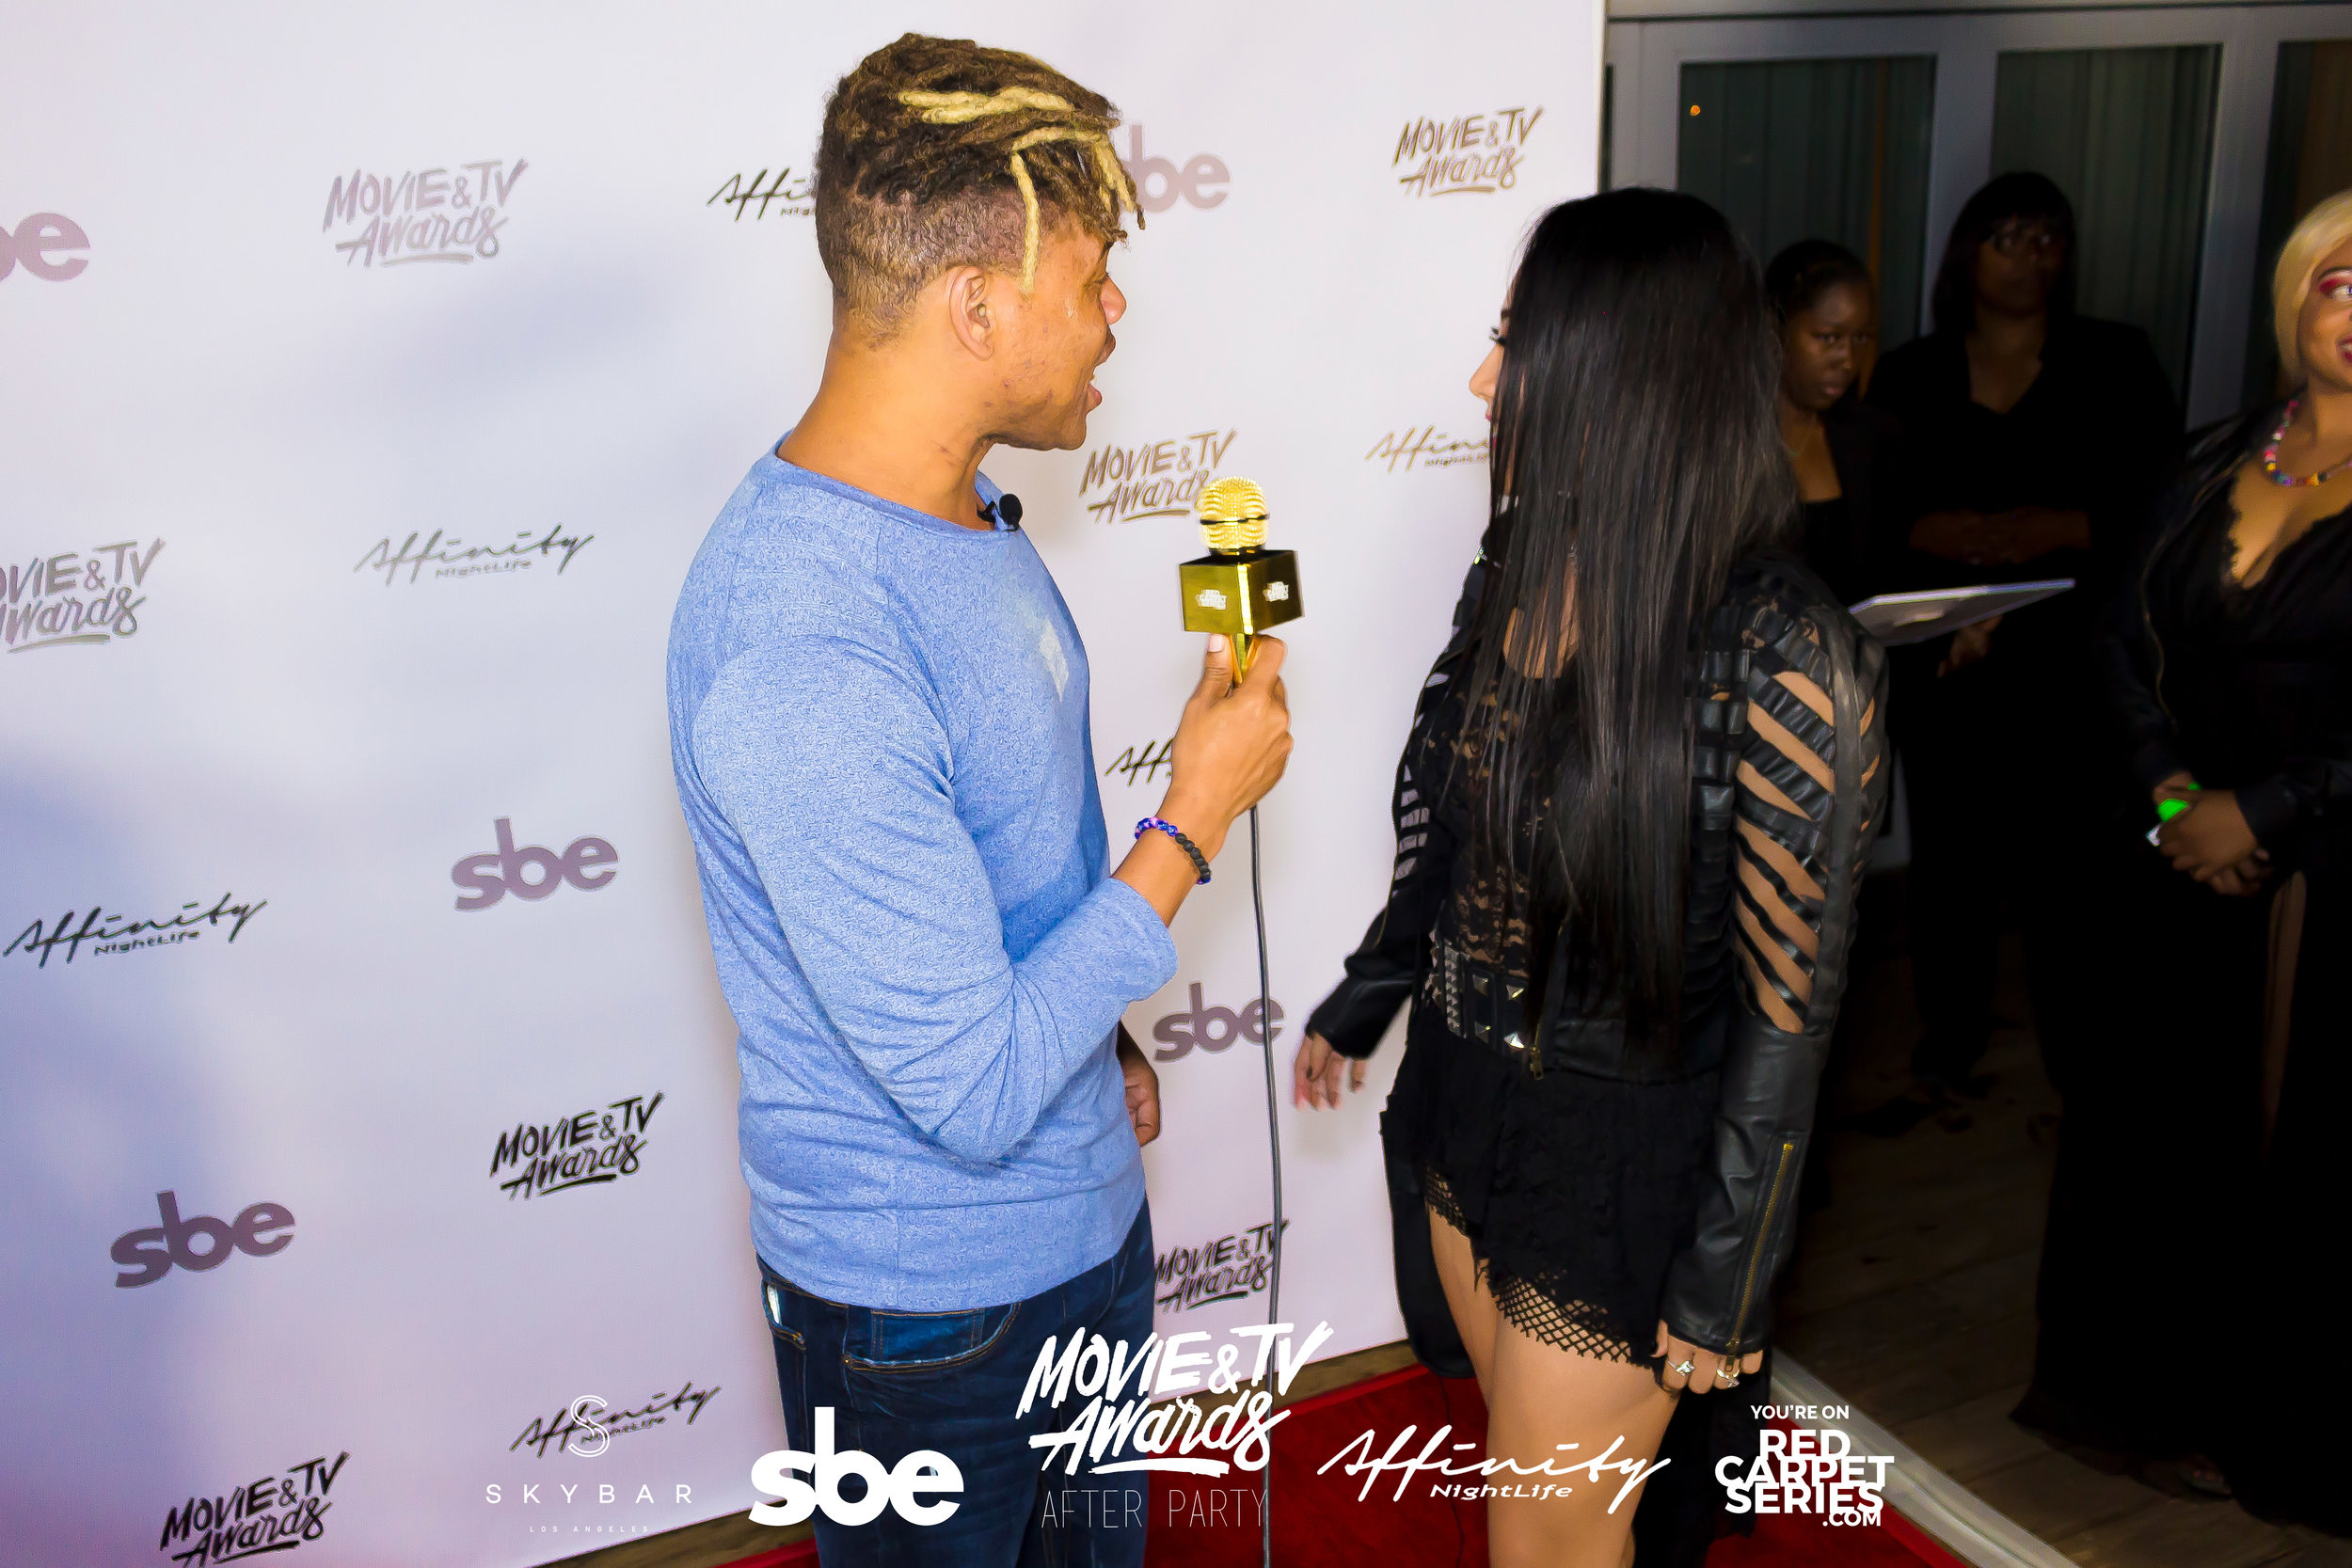 Affinity Nightlife MTV Movie & TV Awards After Party - Skybar at Mondrian - 06-15-19 - Vol. 1_65.jpg